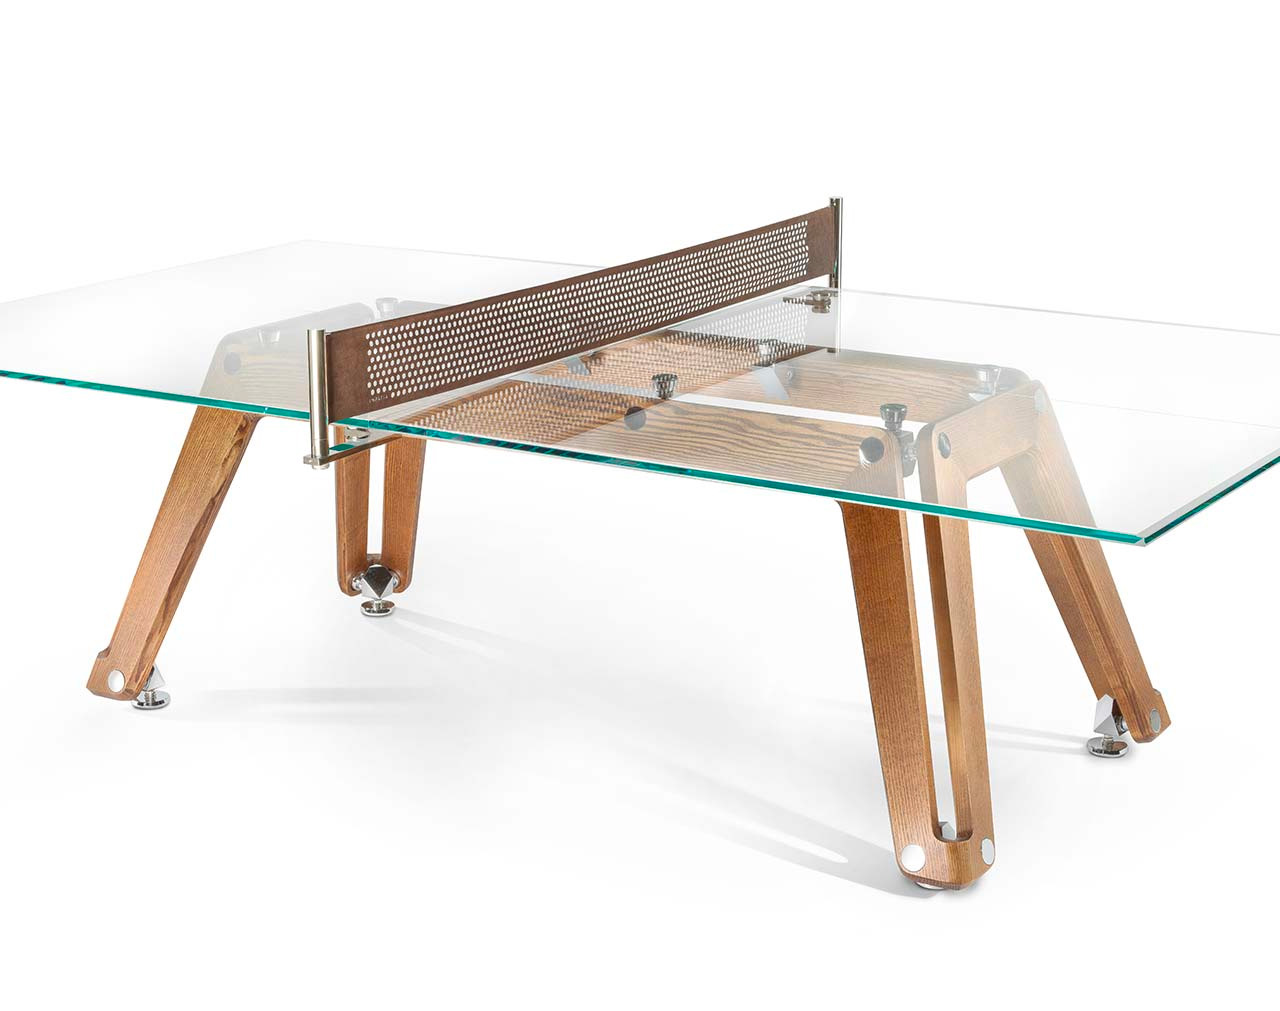 This Could Be the Most Beautiful Ping Pong Table Ever at werd.com